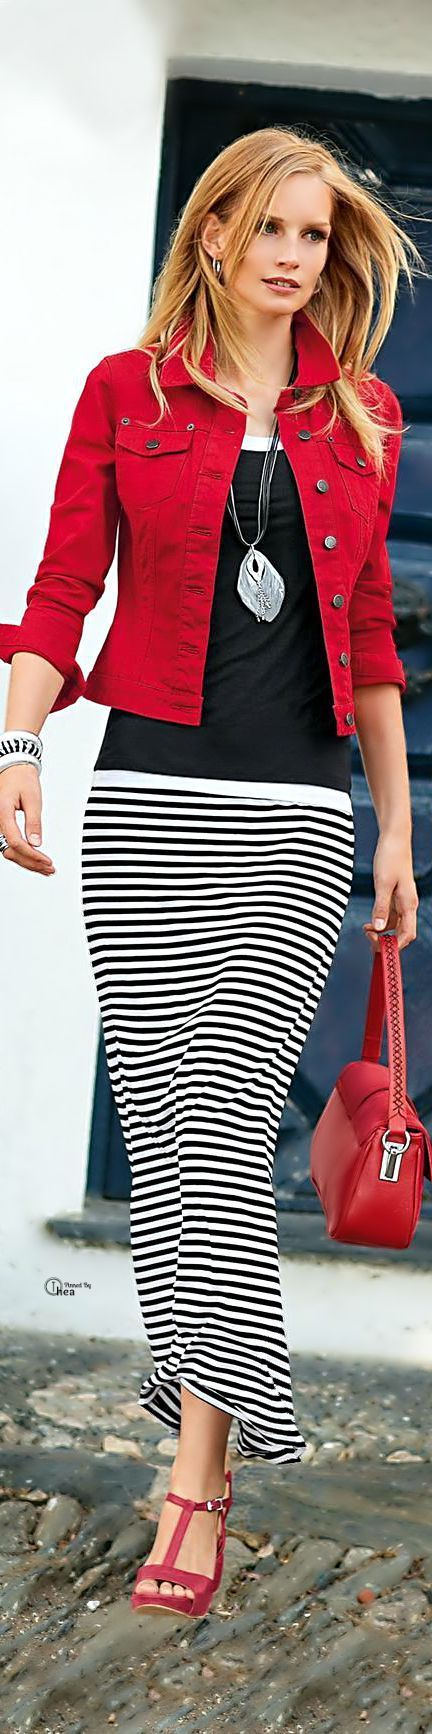 Black & White Striped Maxi Skirt With Red Accents Pictures, Photos ...